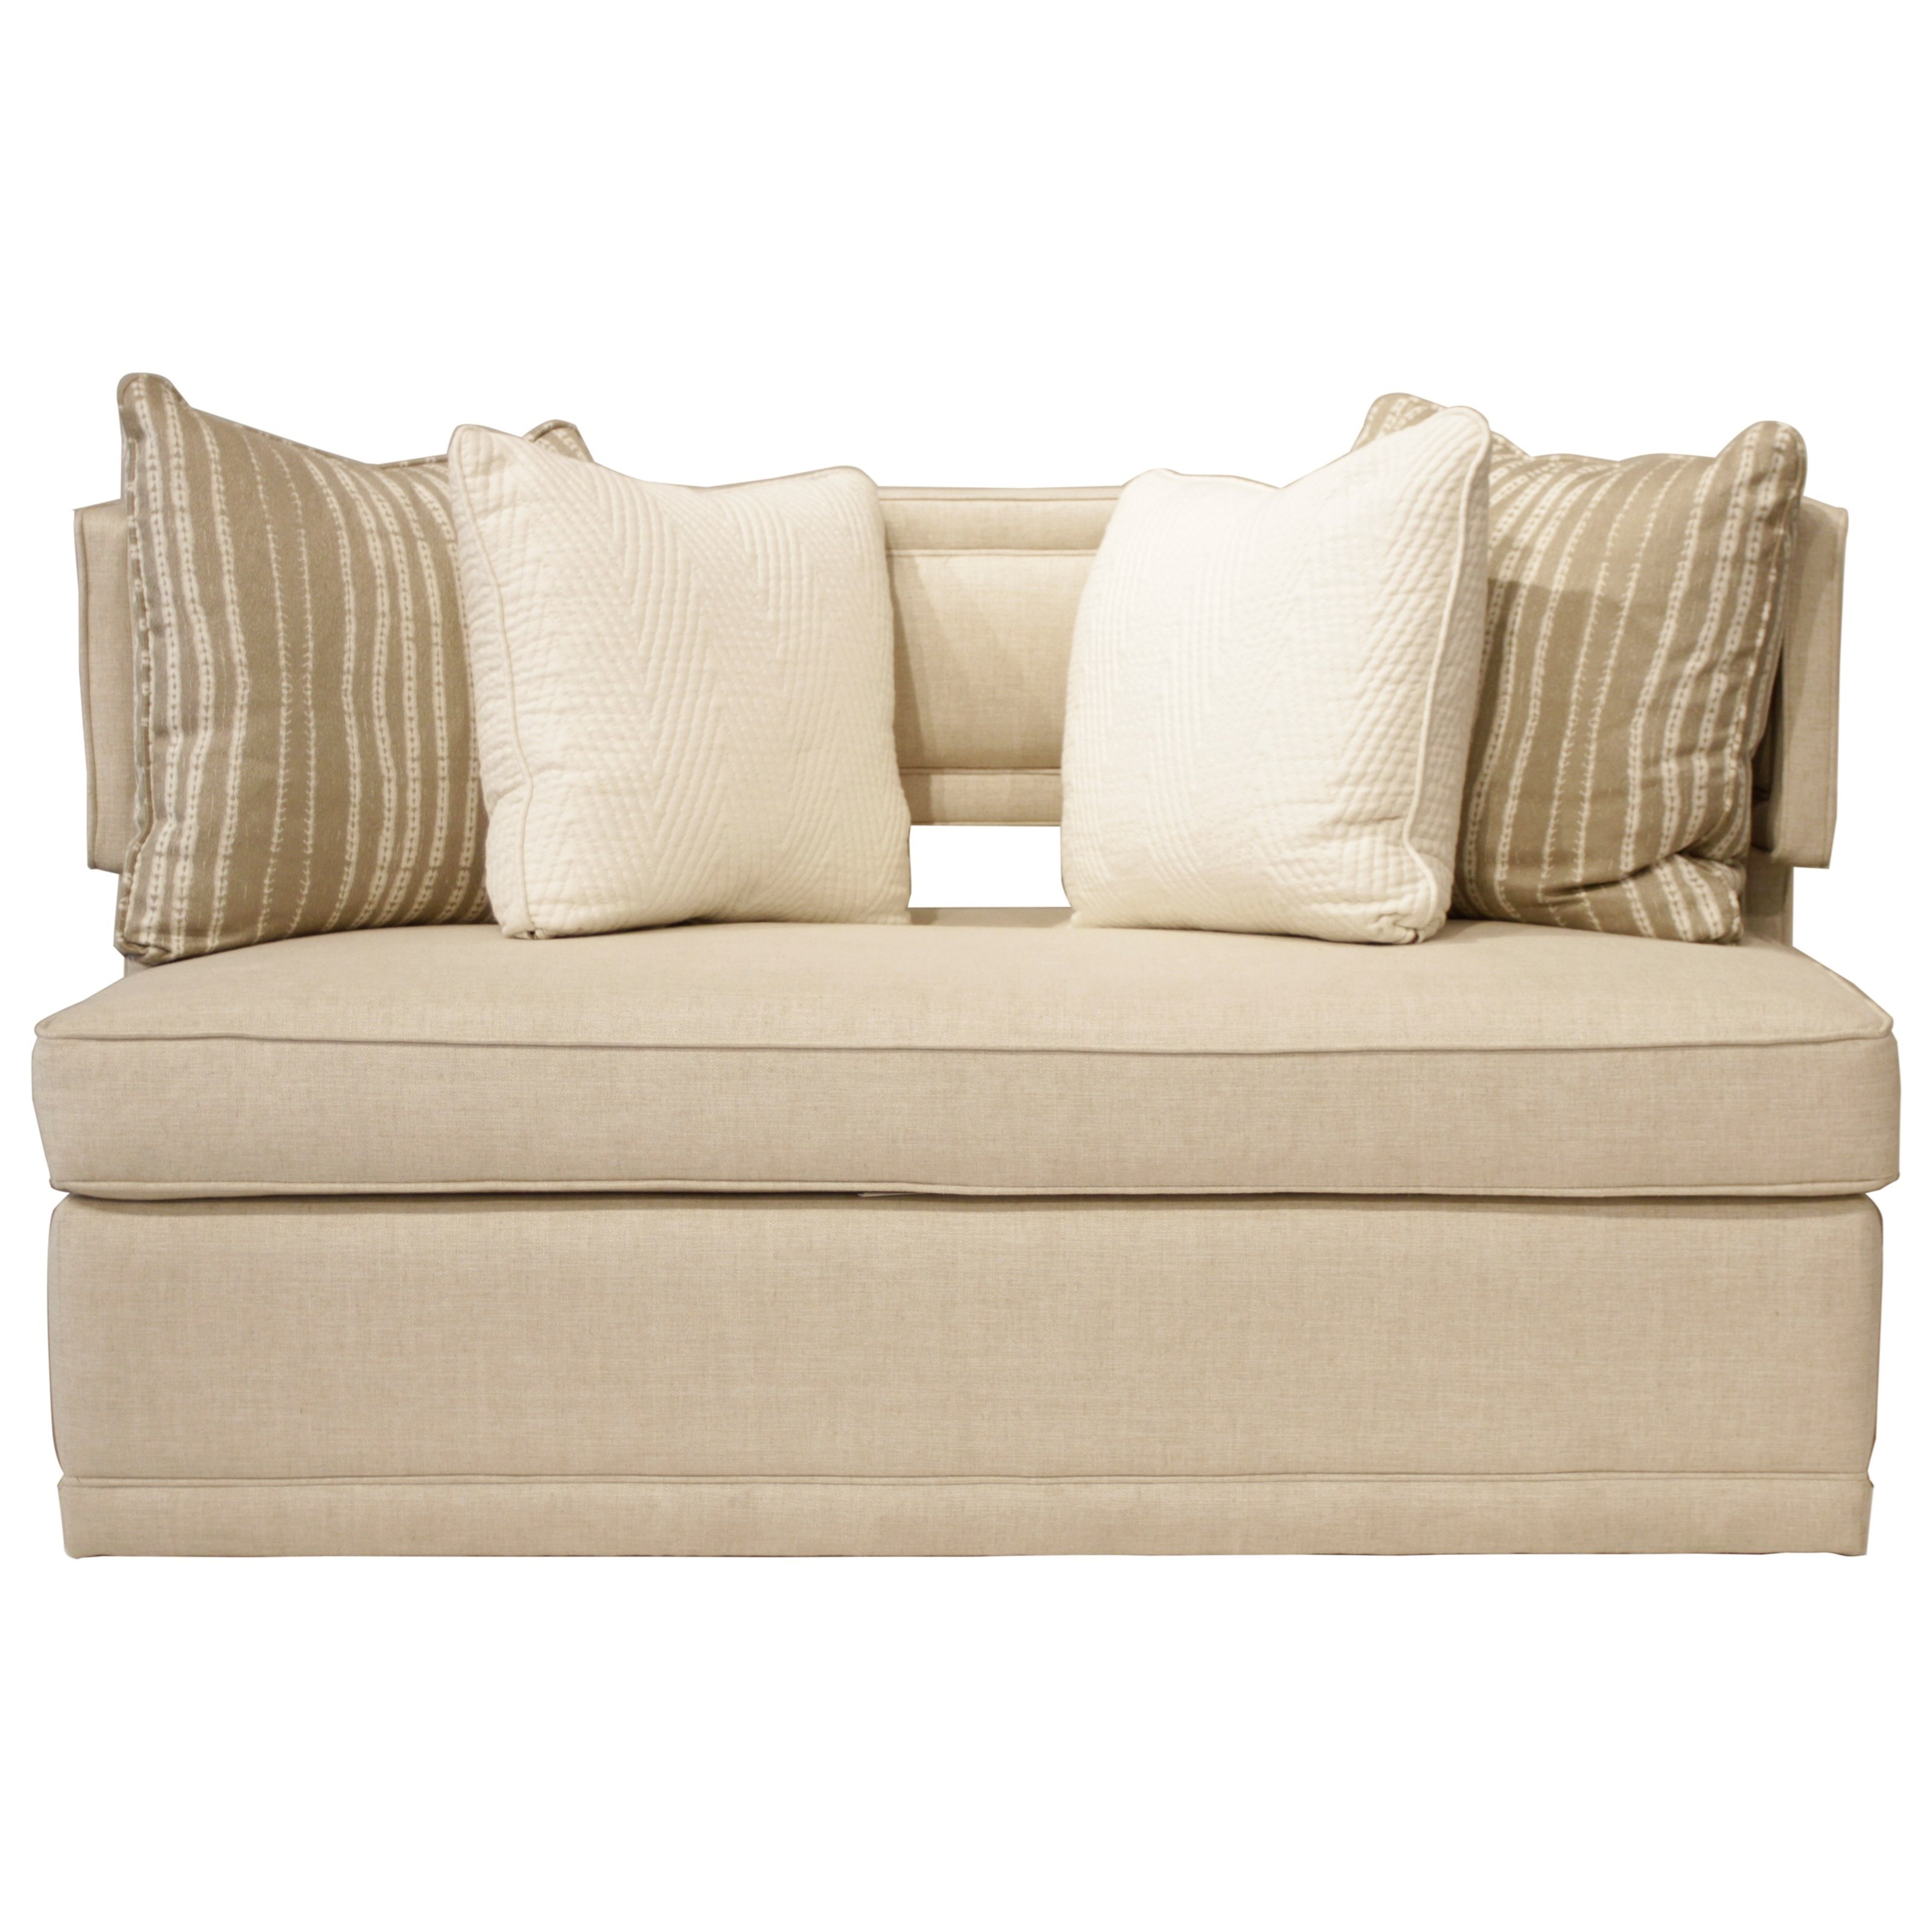 Rachael Ray Home By Craftmaster R1014 Contemporary Sleeper